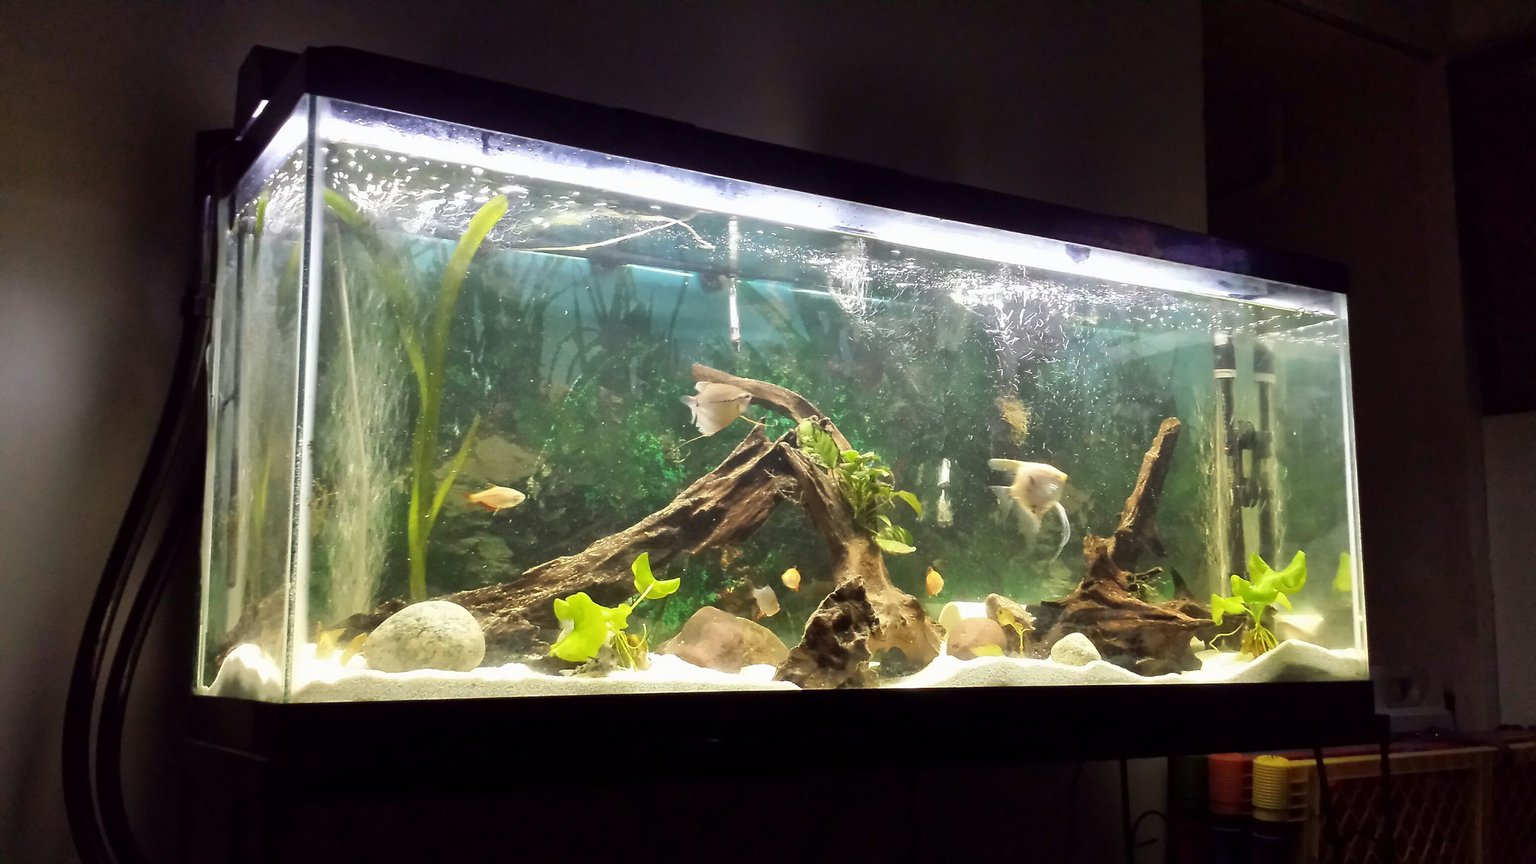 55 gallons freshwater fish tank (mostly fish and non-living decorations) - This one shows its true beauty.hope you guys appreciate it as much as I.